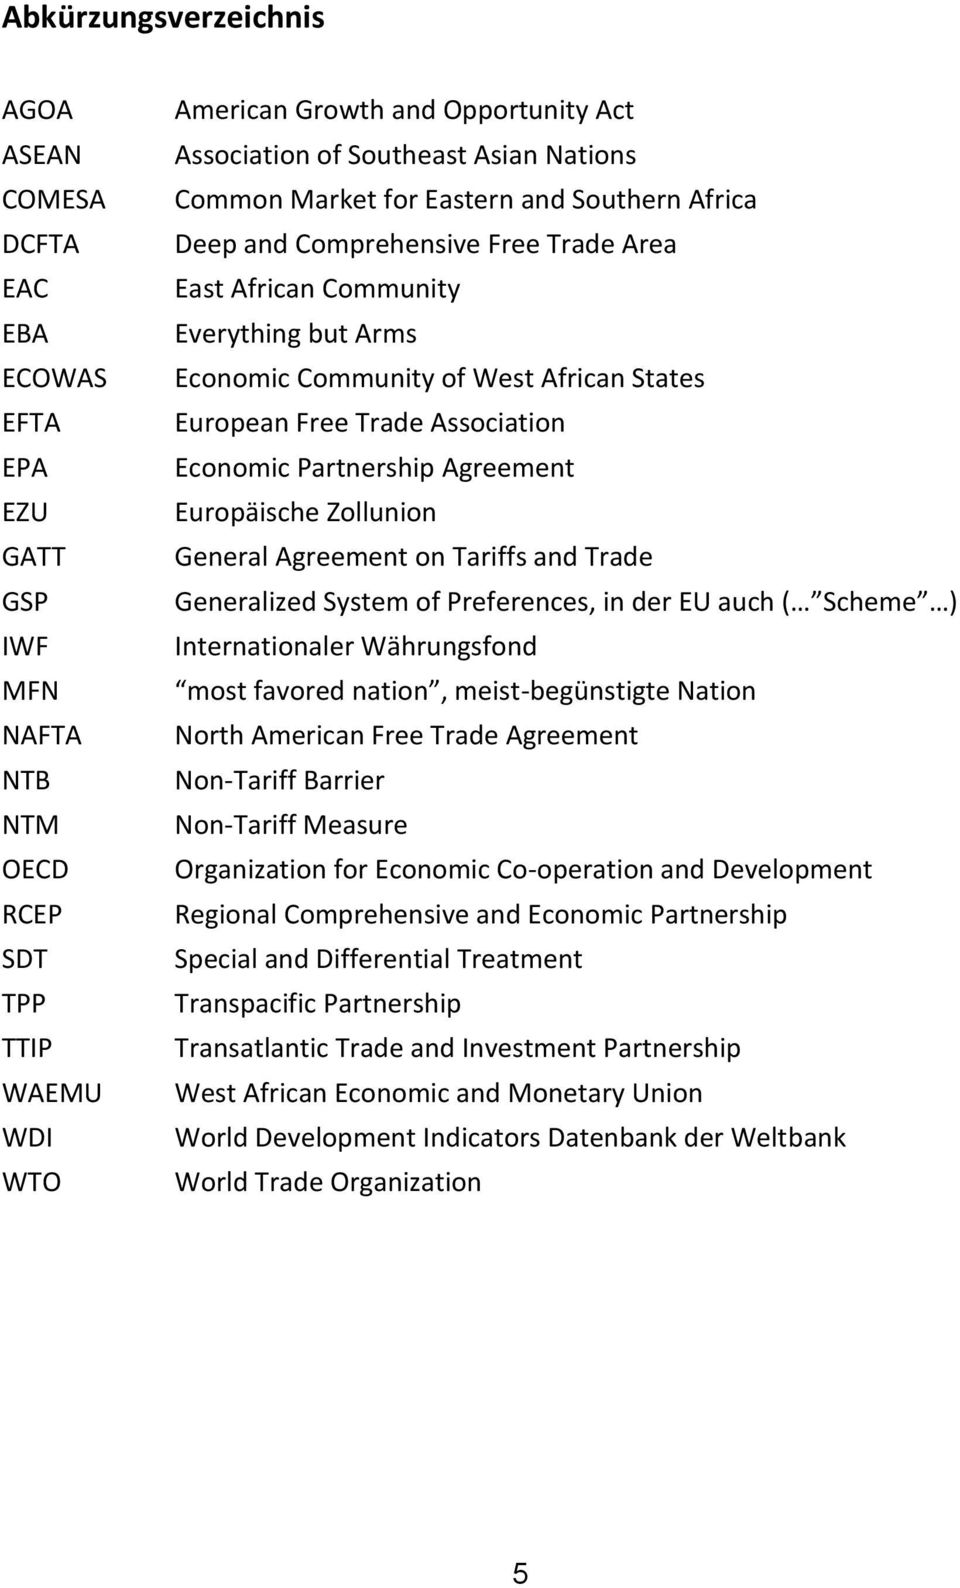 European Free Trade Association Economic Partnership Agreement Europäische Zollunion General Agreement on Tariffs and Trade Generalized System of Preferences, in der EU auch ( Scheme )